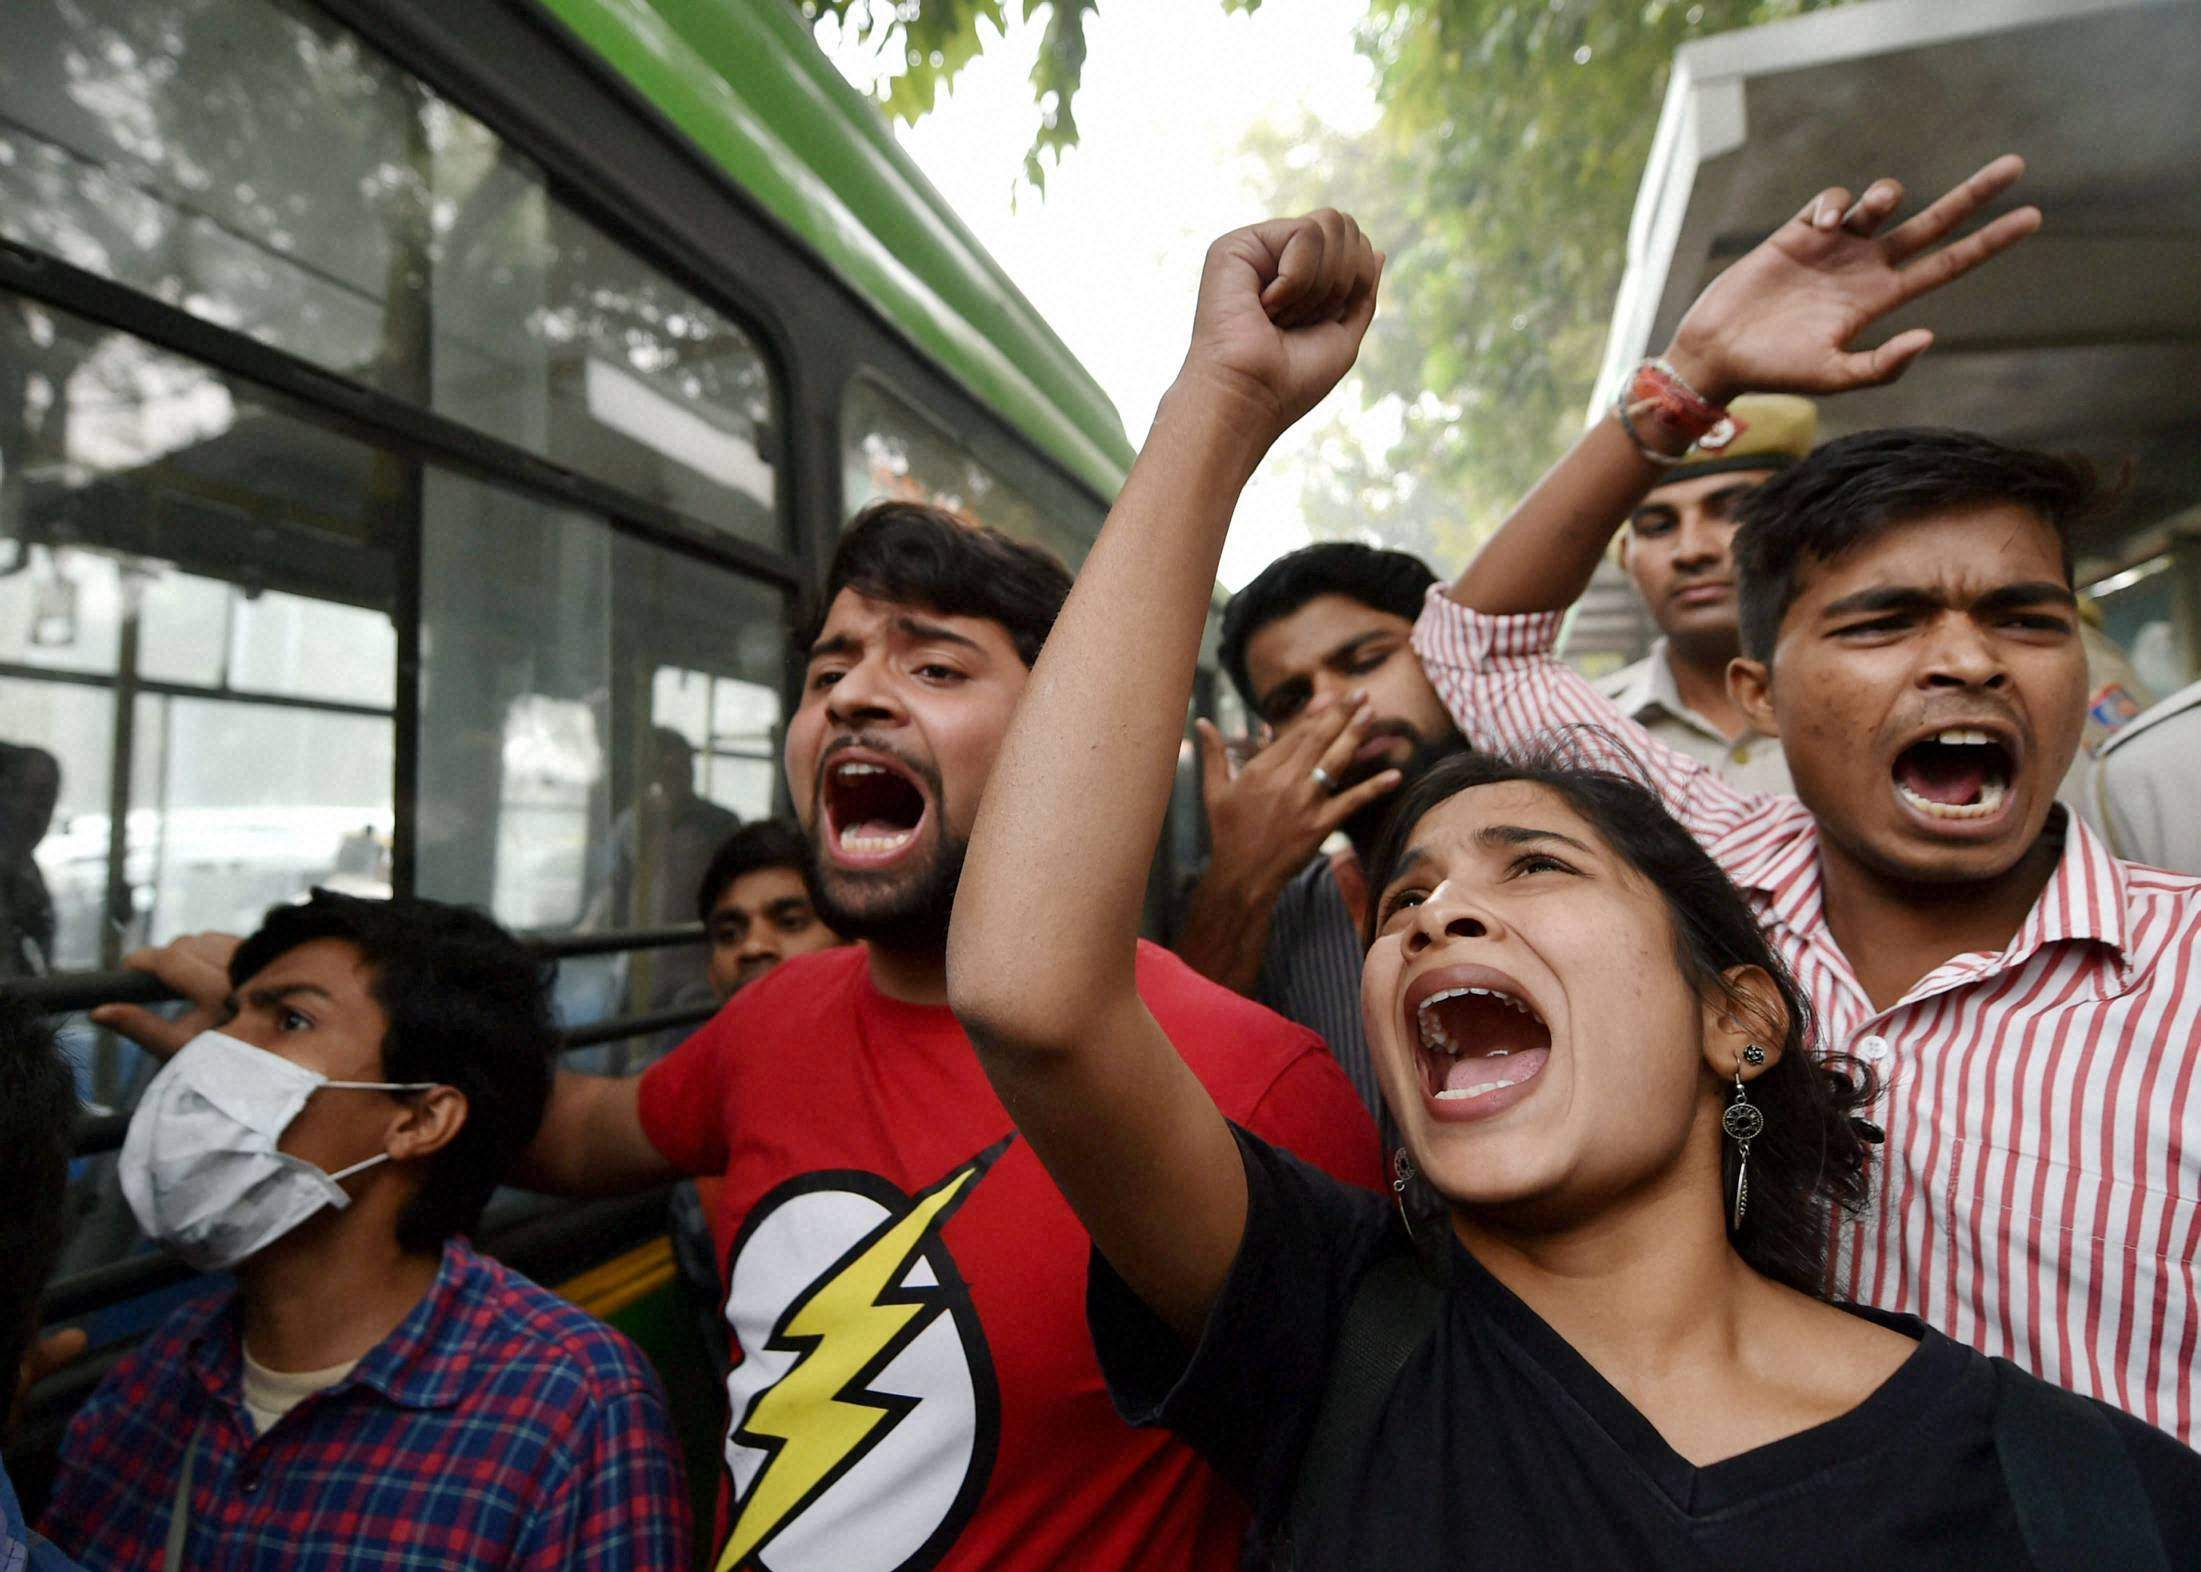 What Makes the Public University Anti-National?